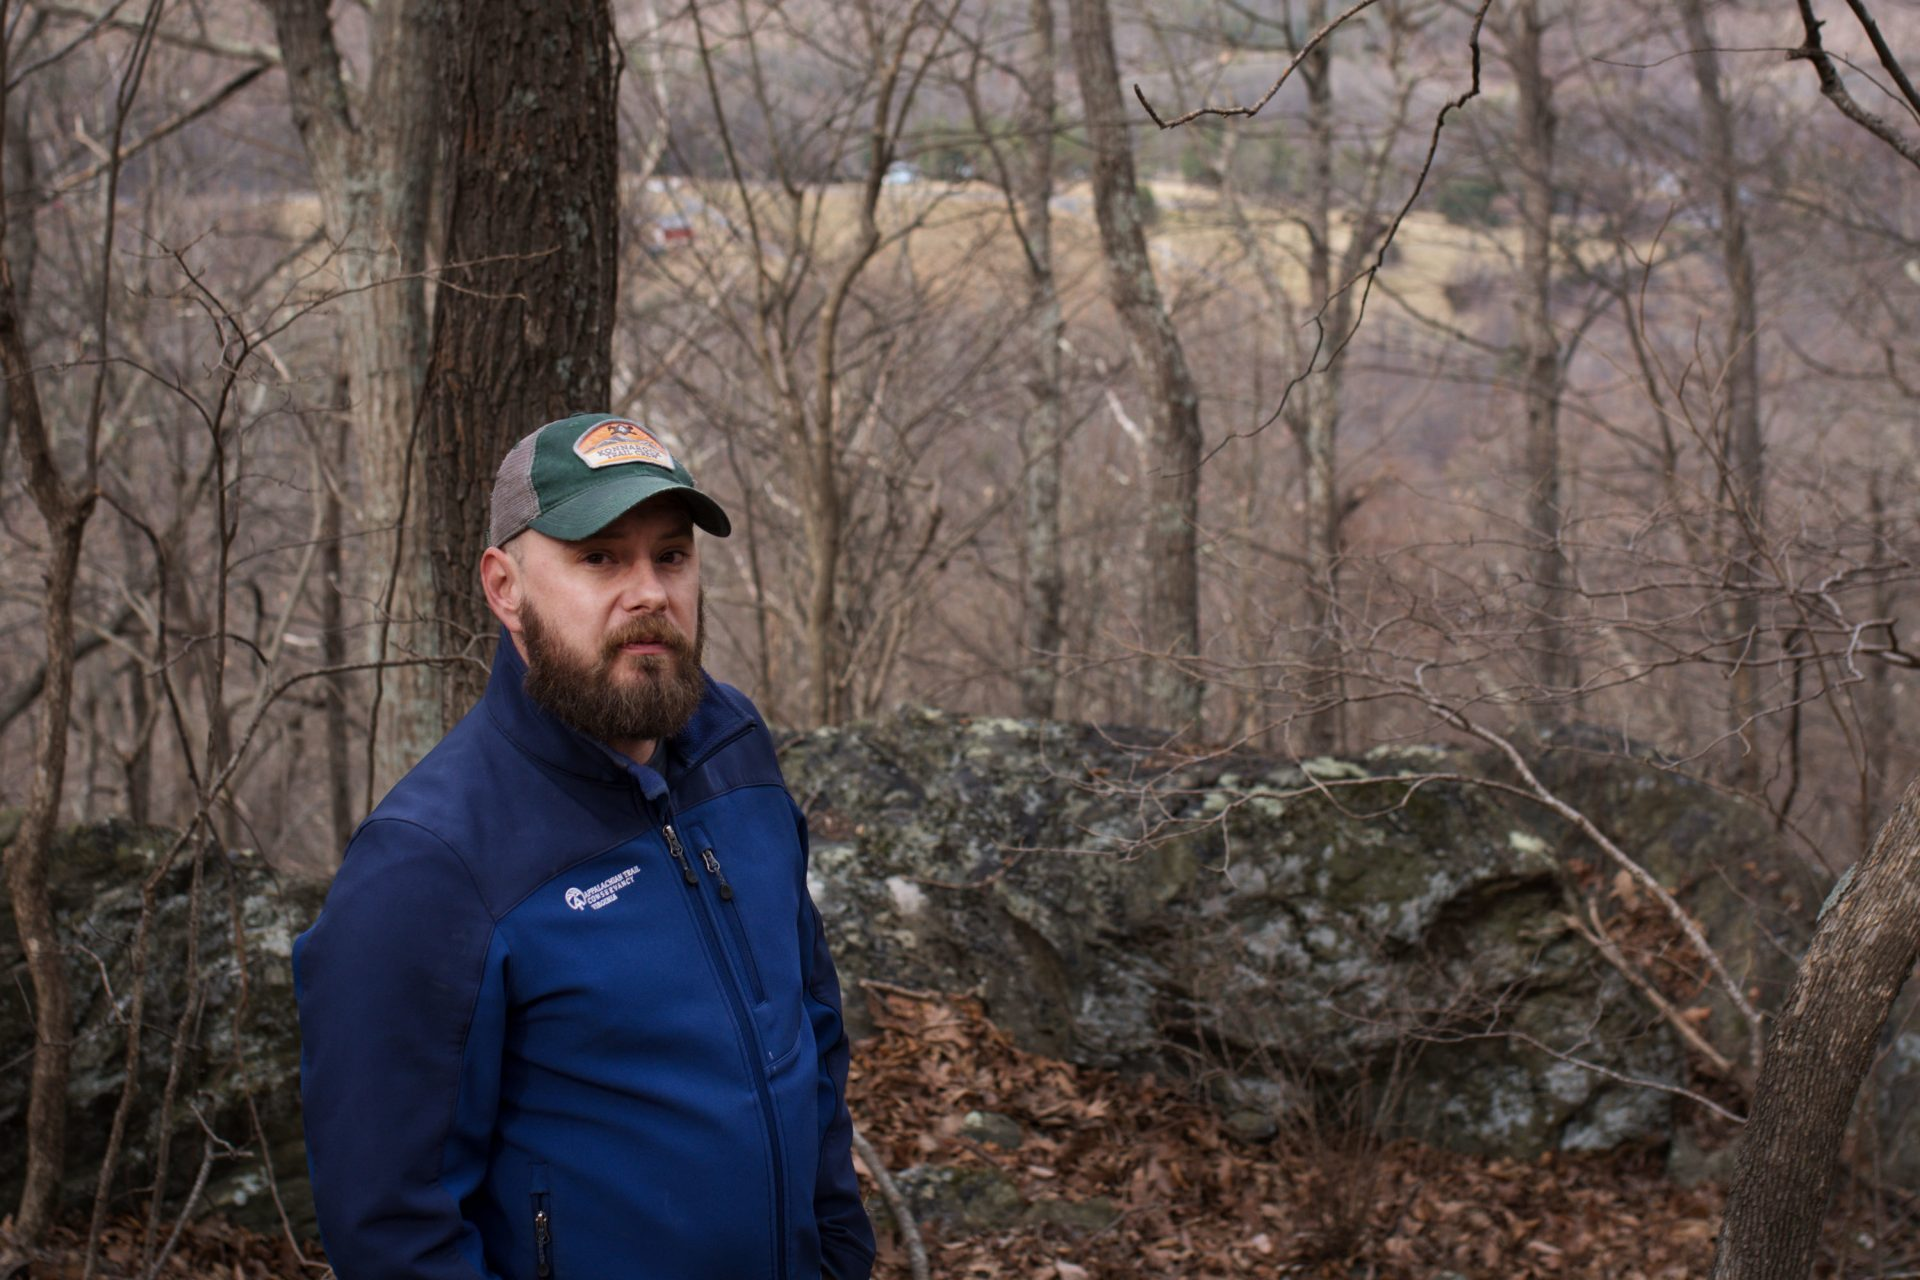 Andrew Downs, senior regional director for the southern region of the Appalachian Trail Conservancy, stands at the approximate spot where the pipeline would cross underground.